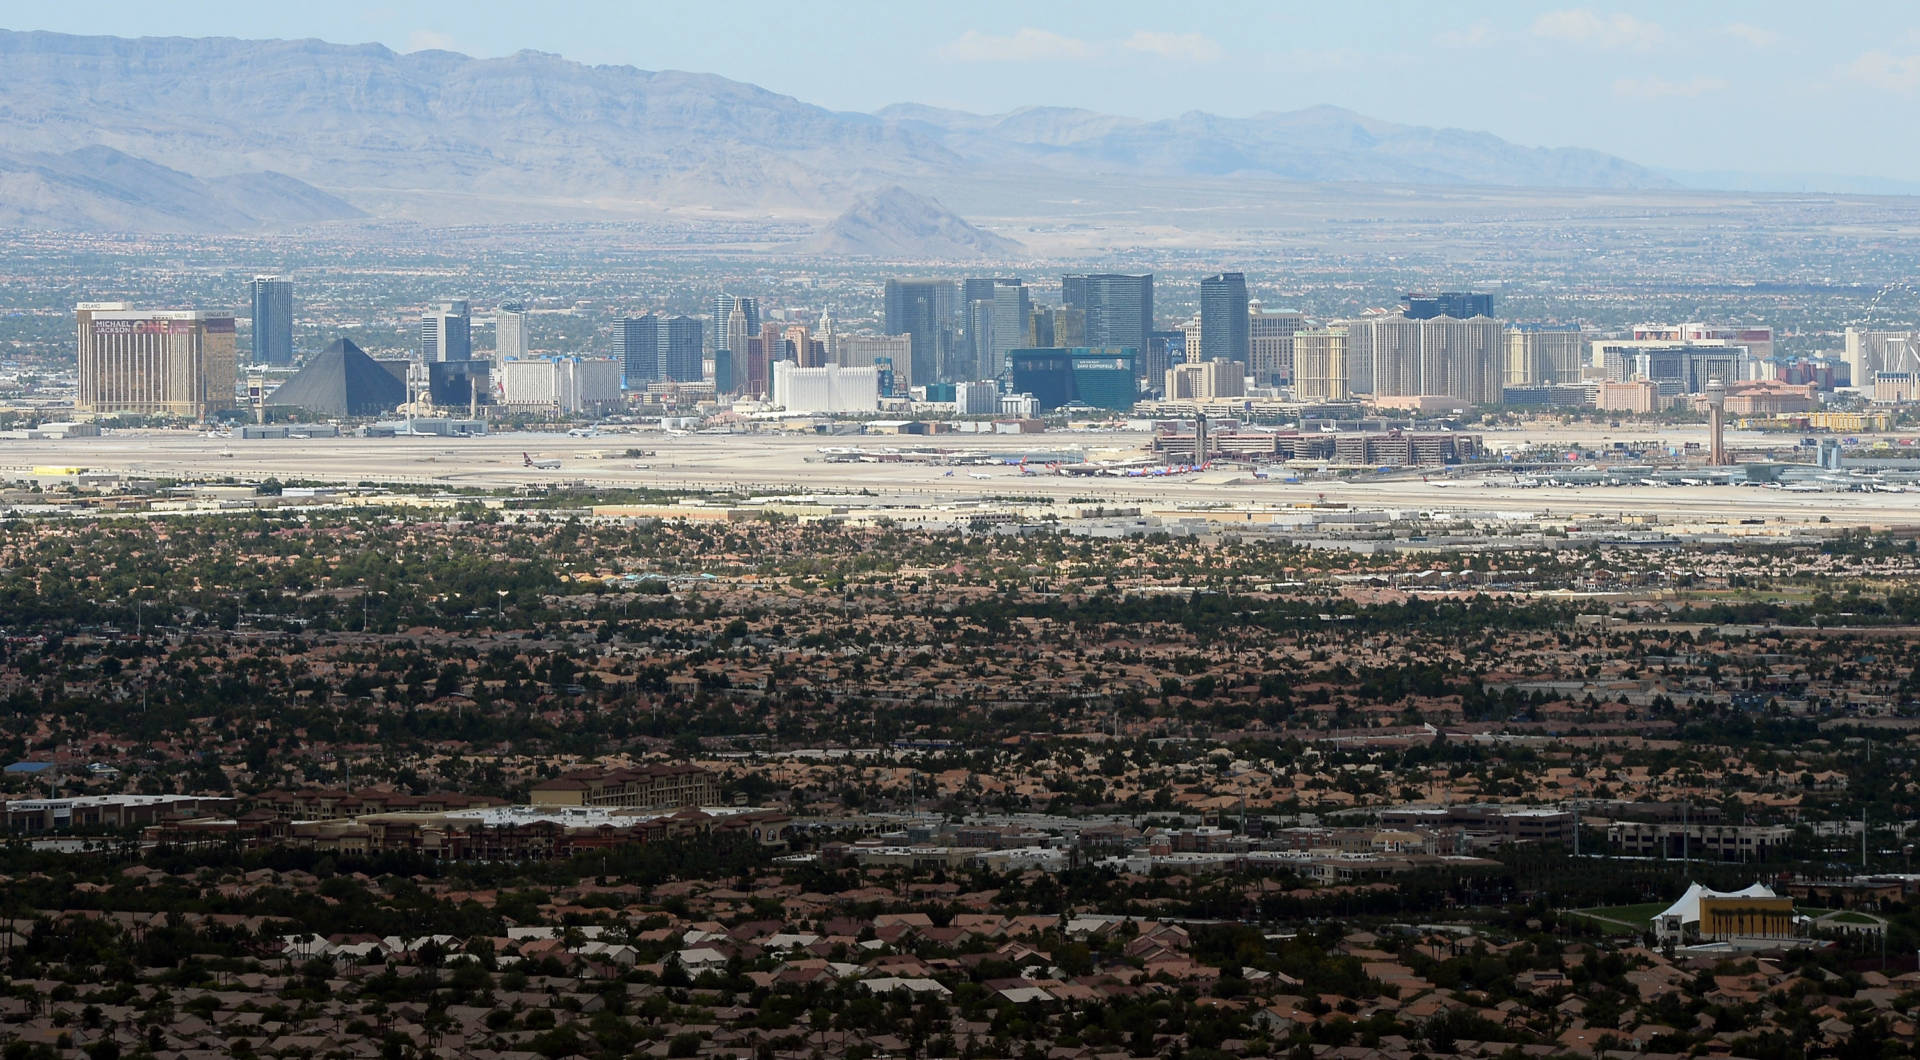 Californians have poured across the state line over the past few years, fleeing high housing costs. Now, some Nevada Republicans fear the state will begin to resemble its deep blue neighbor. Ethan Miller/Getty Images for Ascaya